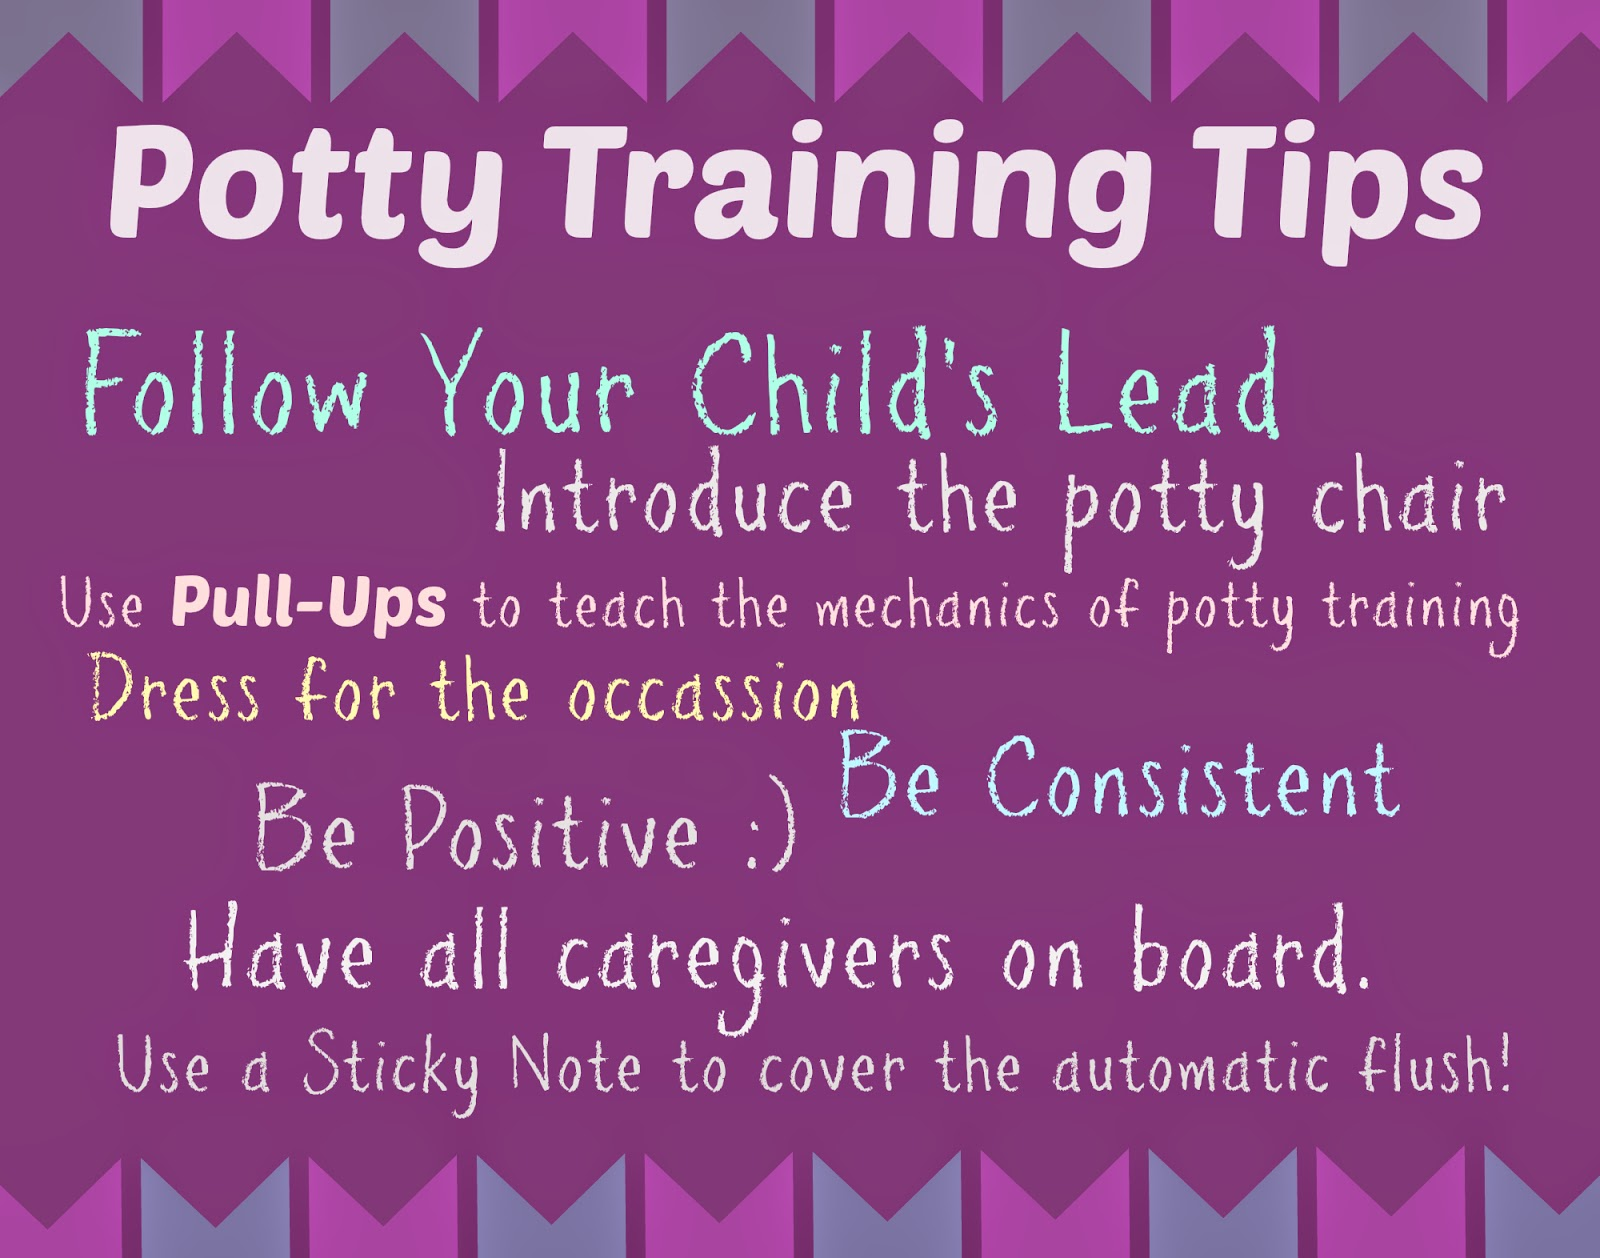 Helpful Potty Training Tips #SayAdiosToDiapers